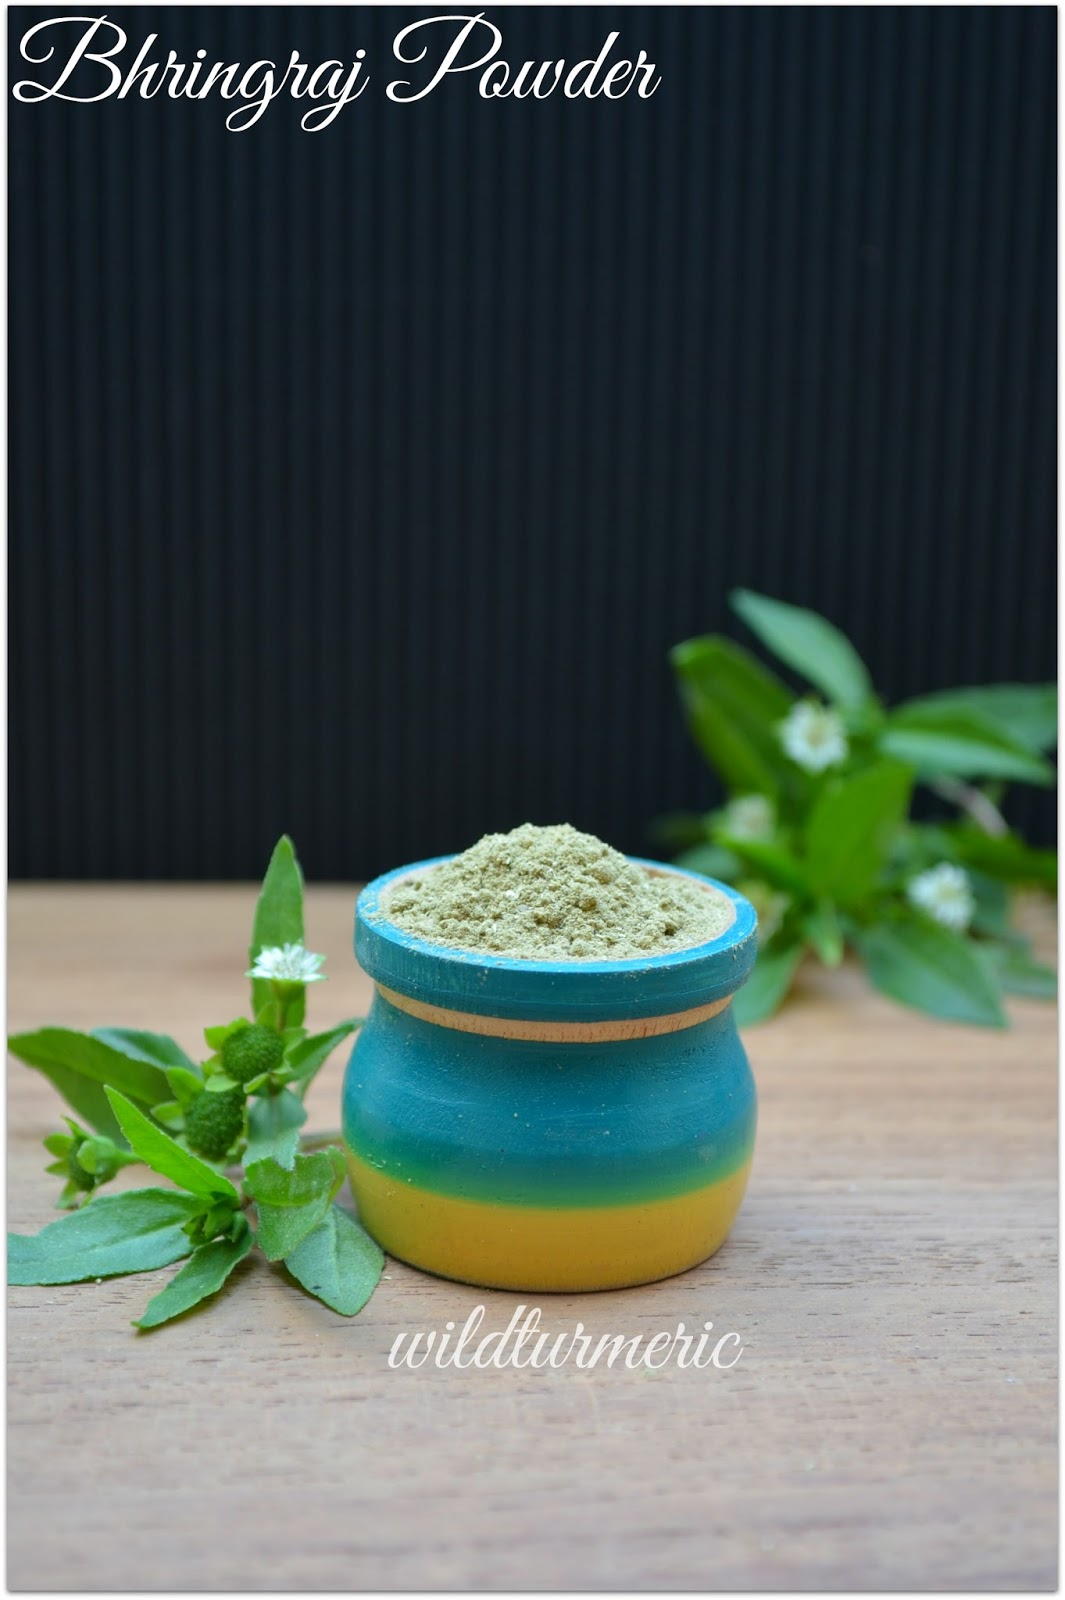 3 Top Ways To Use Bhringraj Powder For Hair Growth